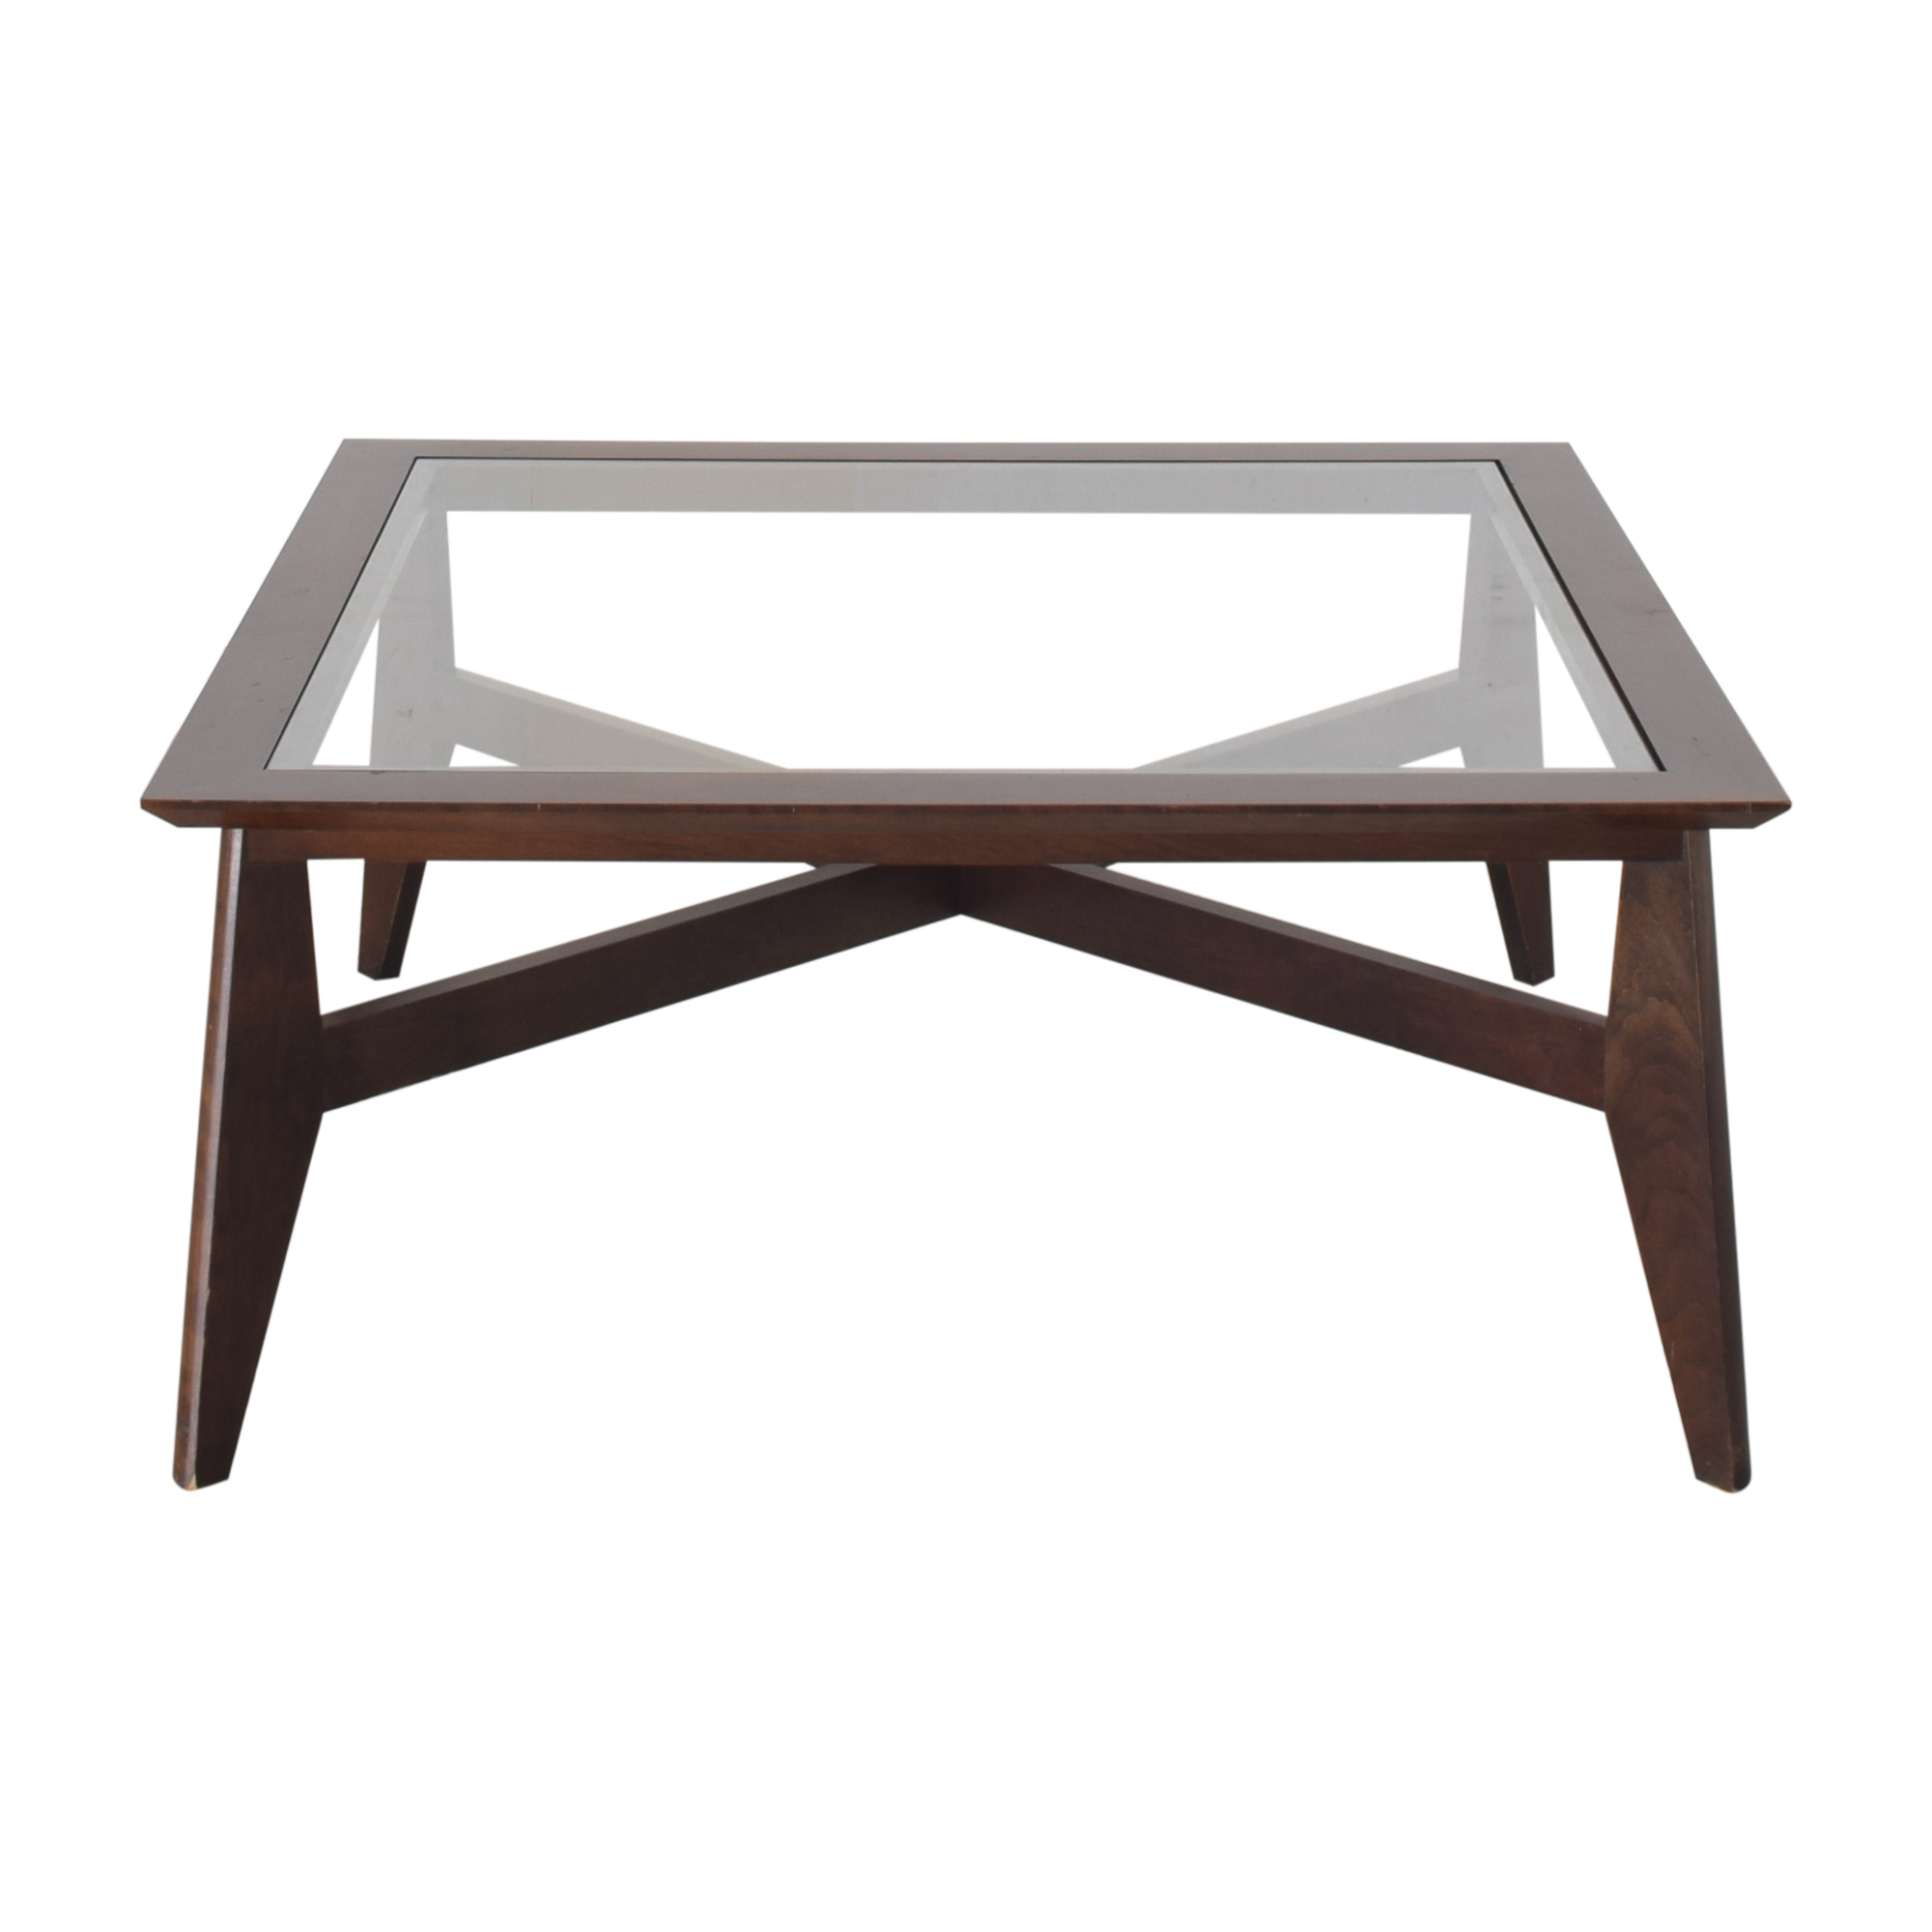 Ethan Allen Ethan Allen Trevor Coffee Table